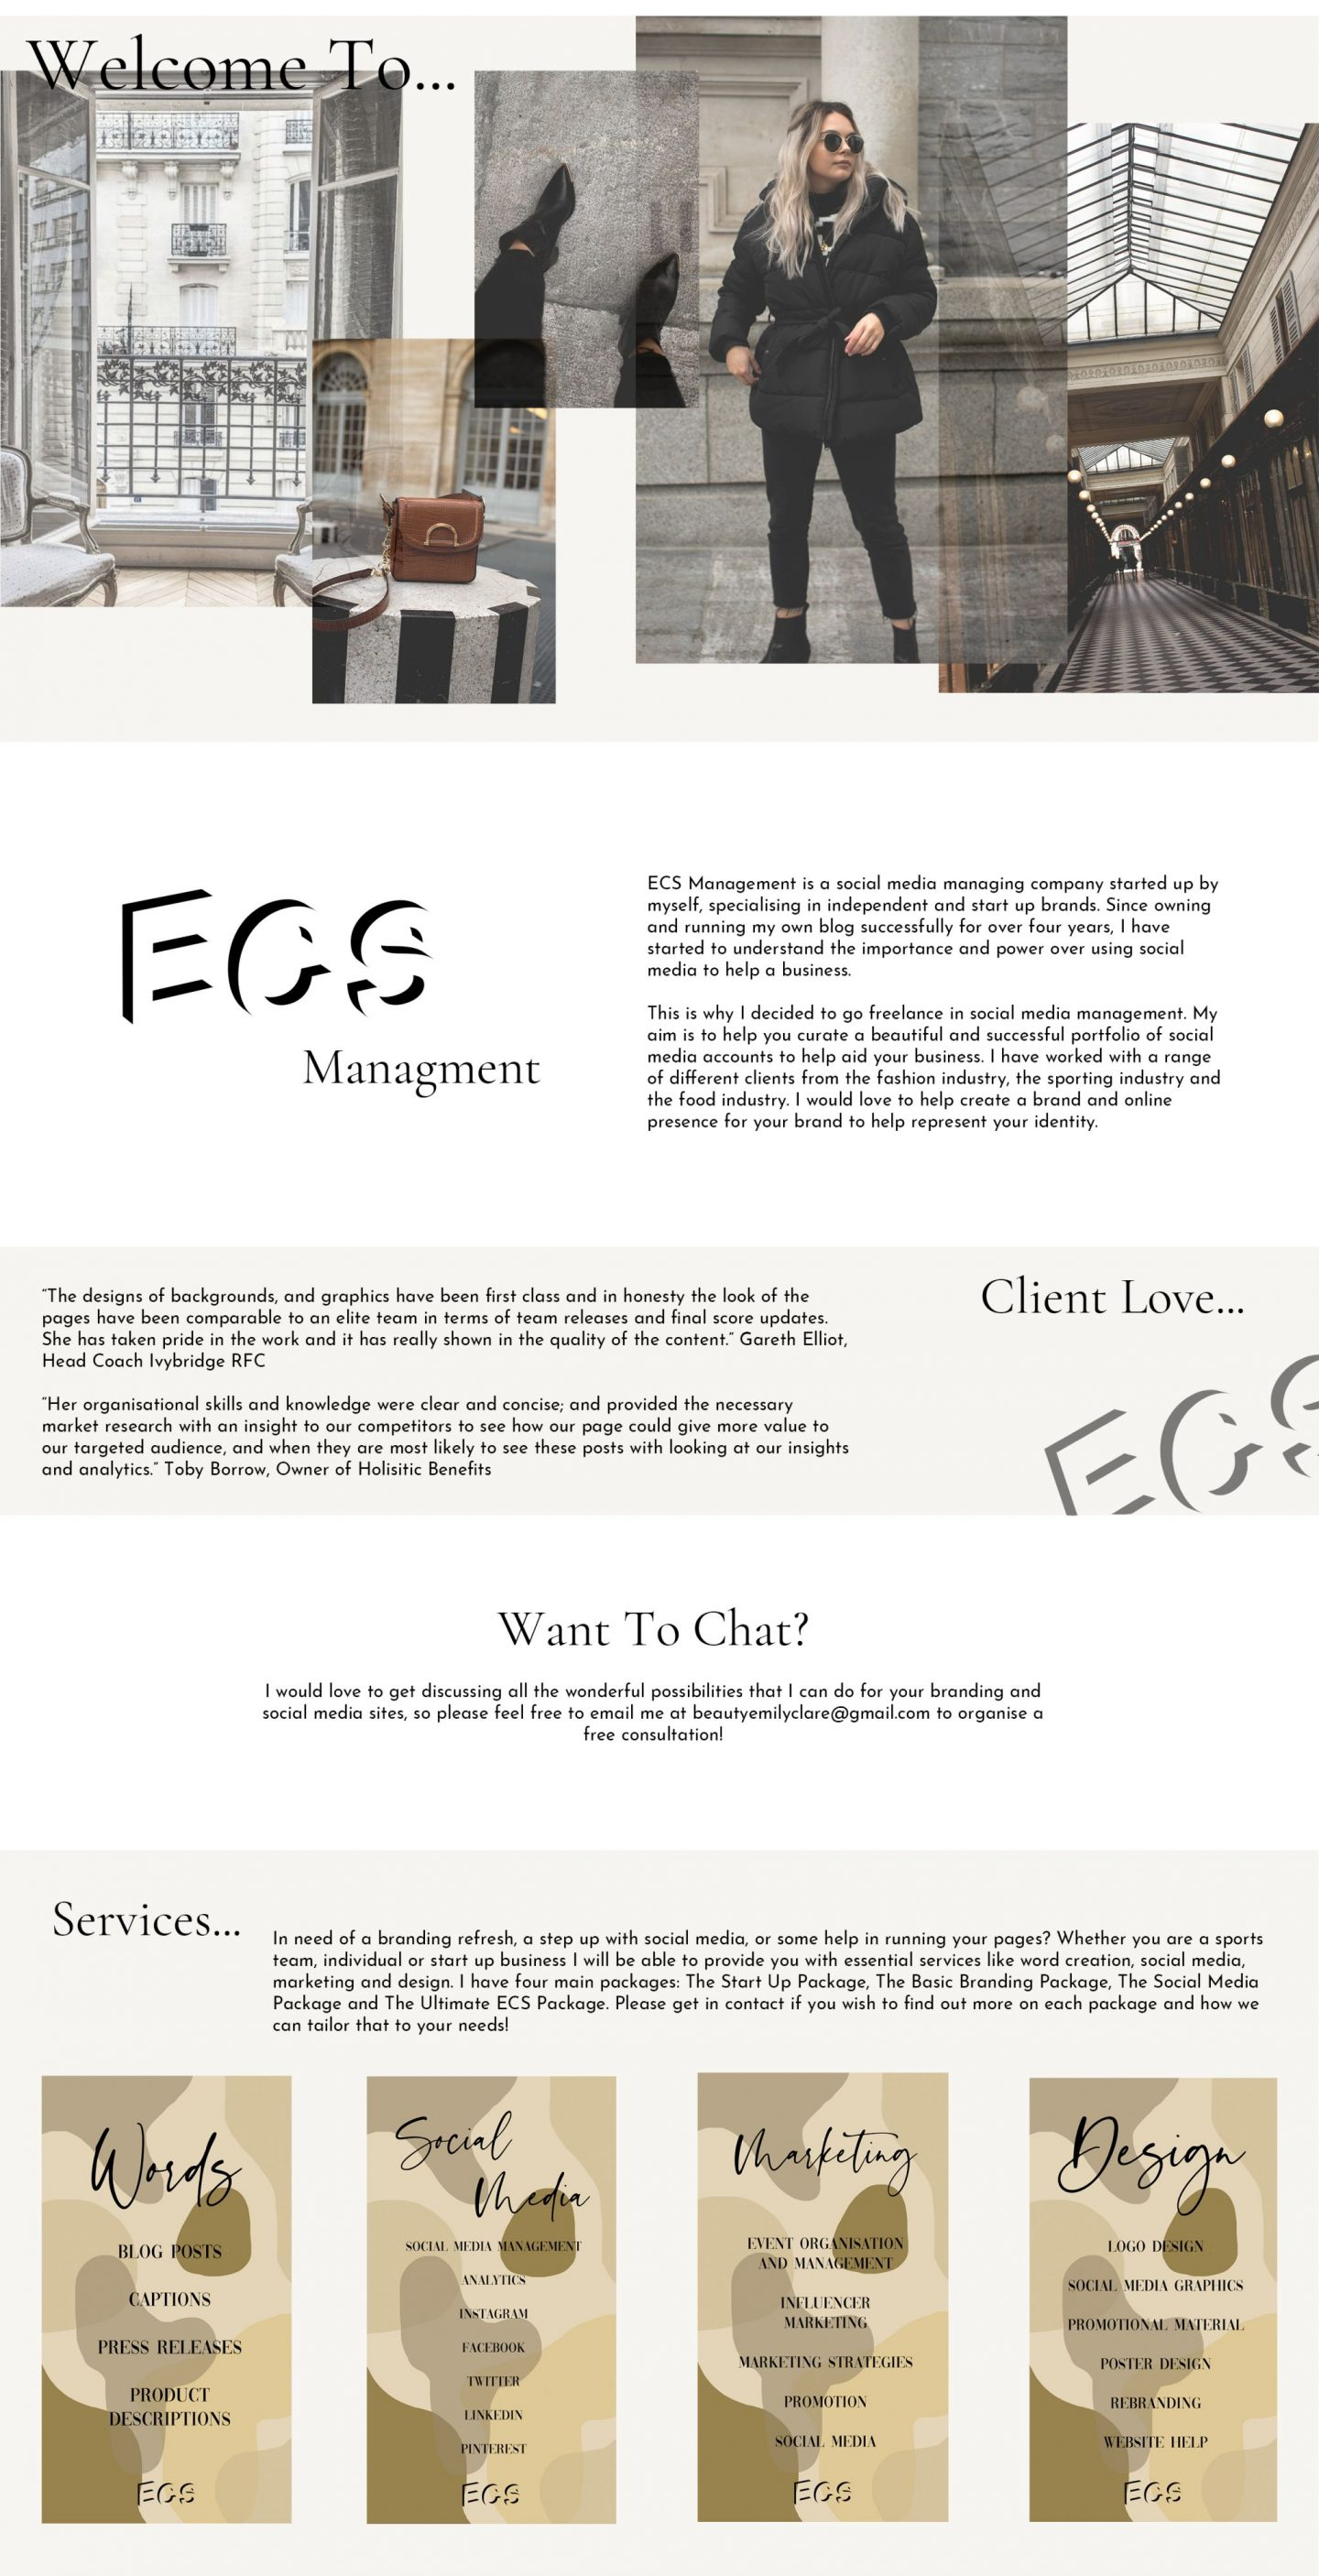 ECS Management is a social media managing company started up by myself, specialising in independent and start up brands.